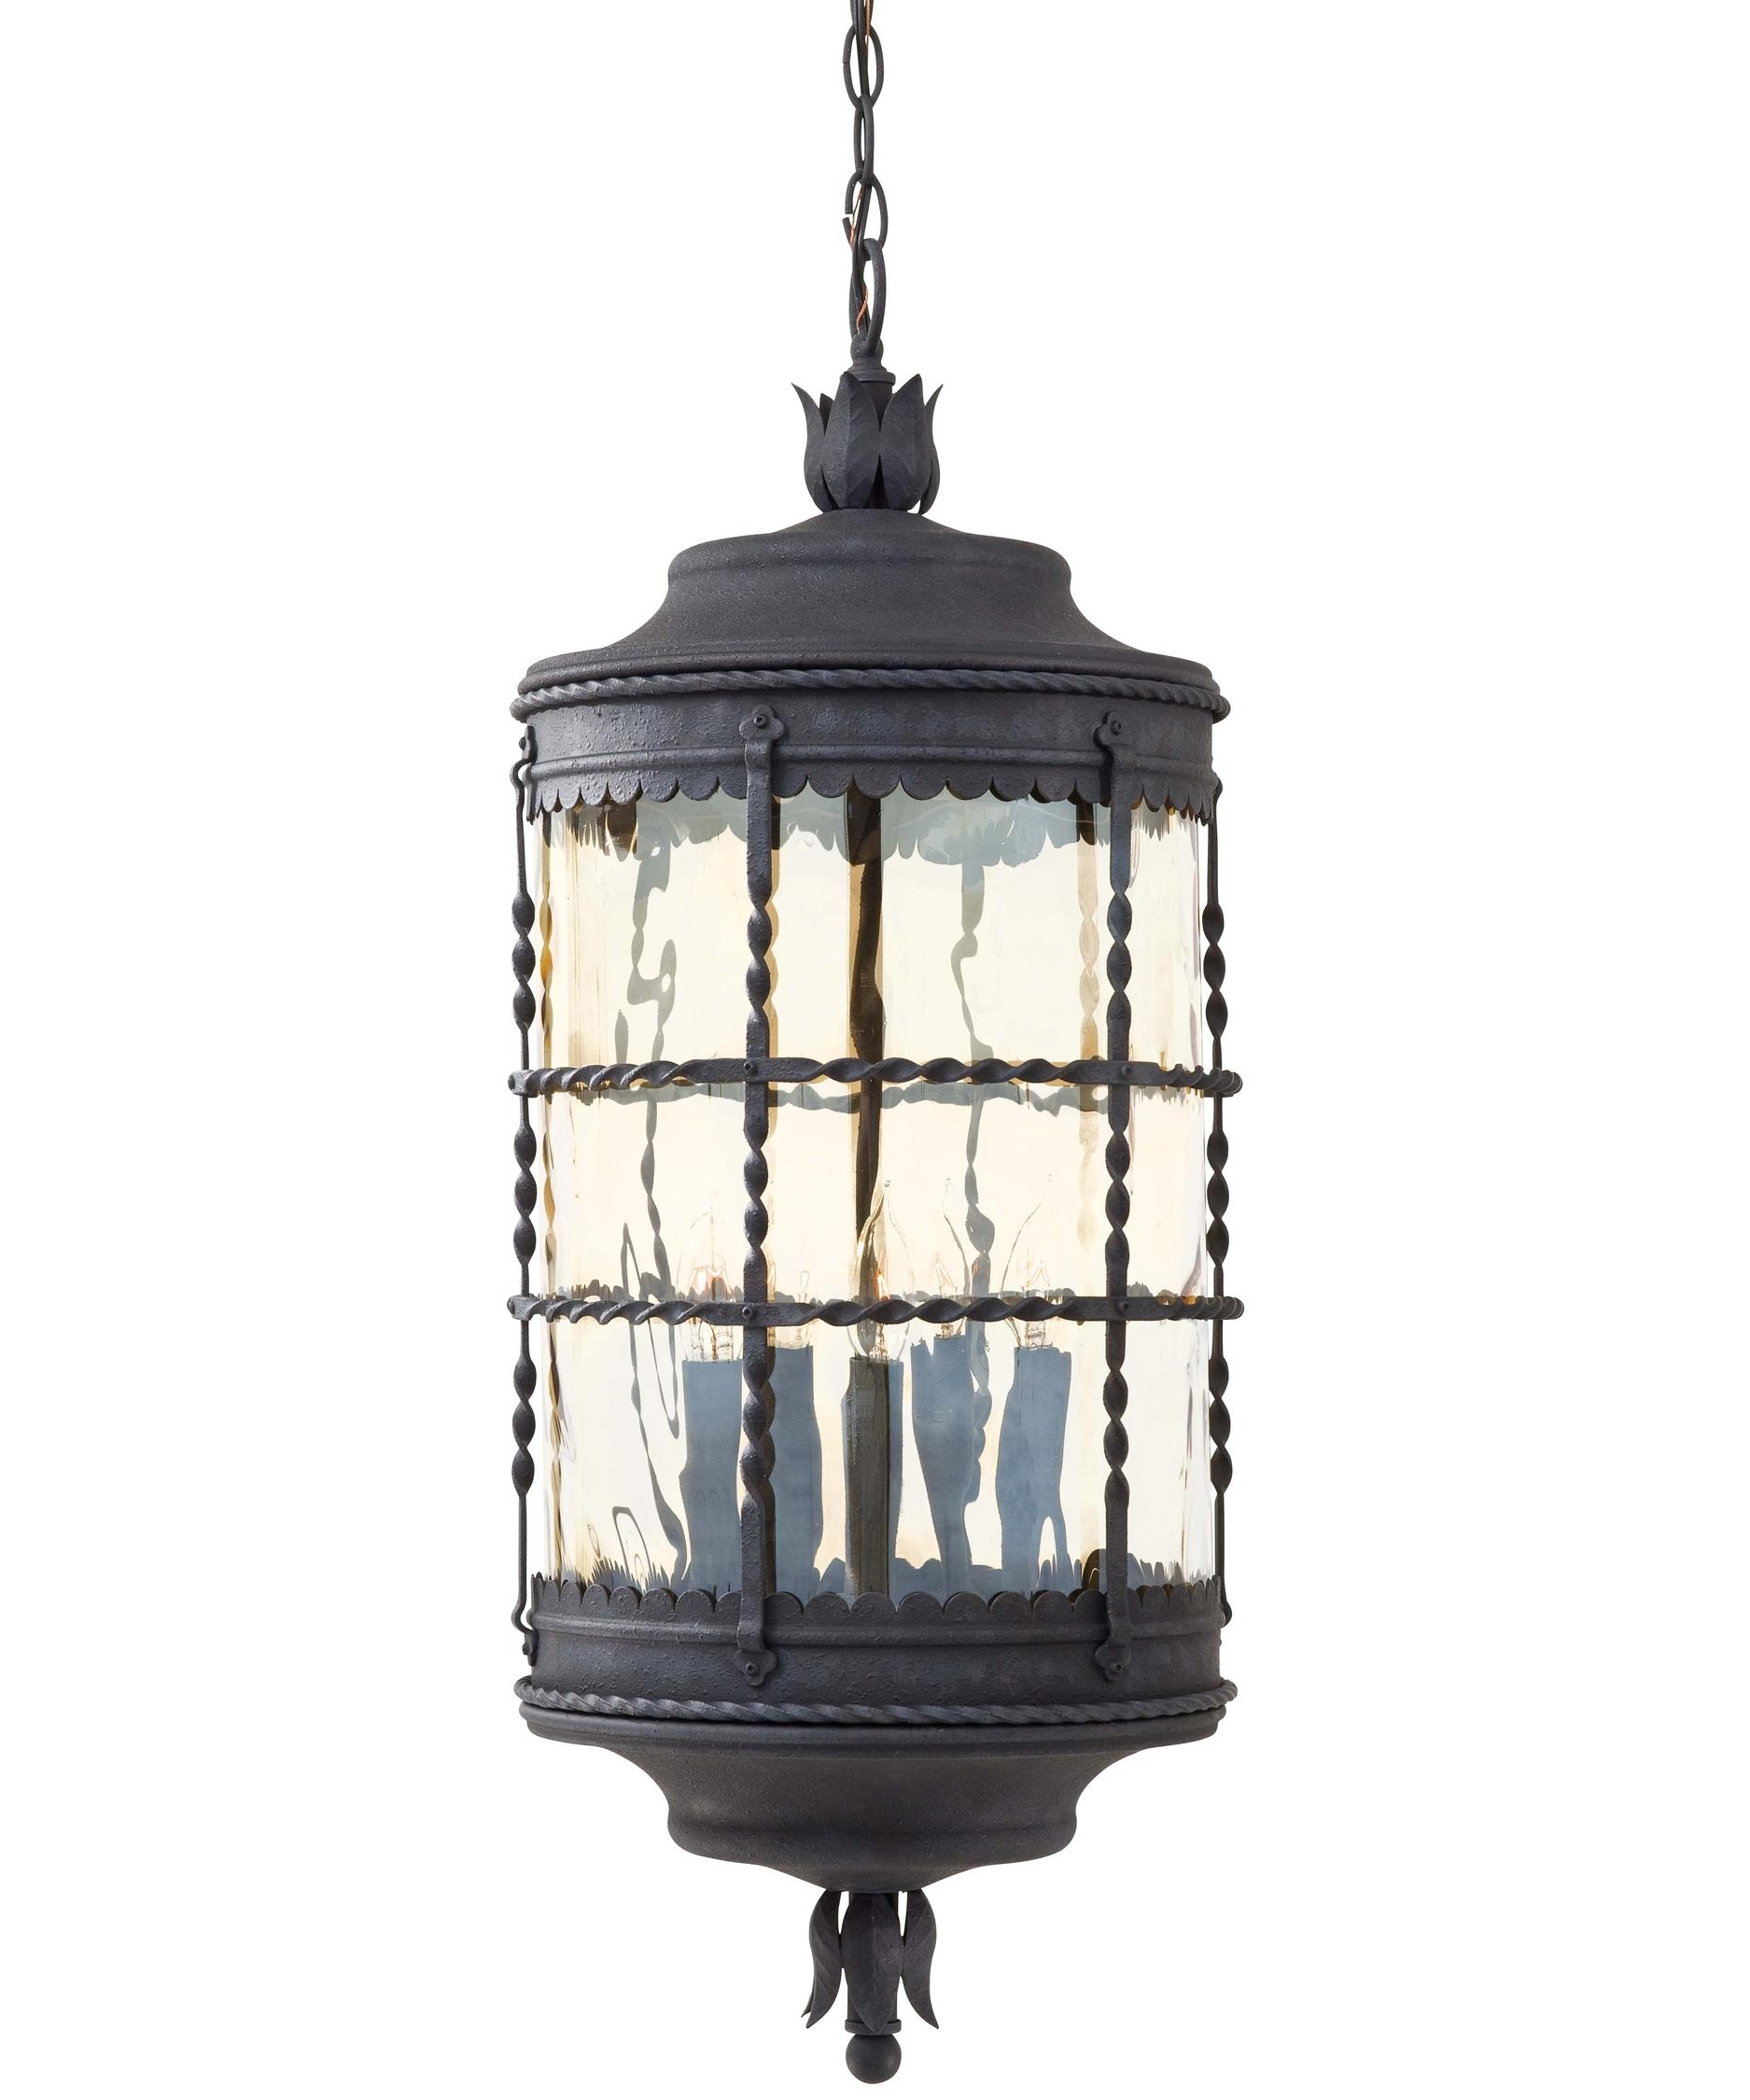 Outdoor Hanging Wall Lanterns Regarding Popular Minka Lavery 8884 Mallorca 13 Inch Wide 5 Light Outdoor Hanging (View 12 of 20)